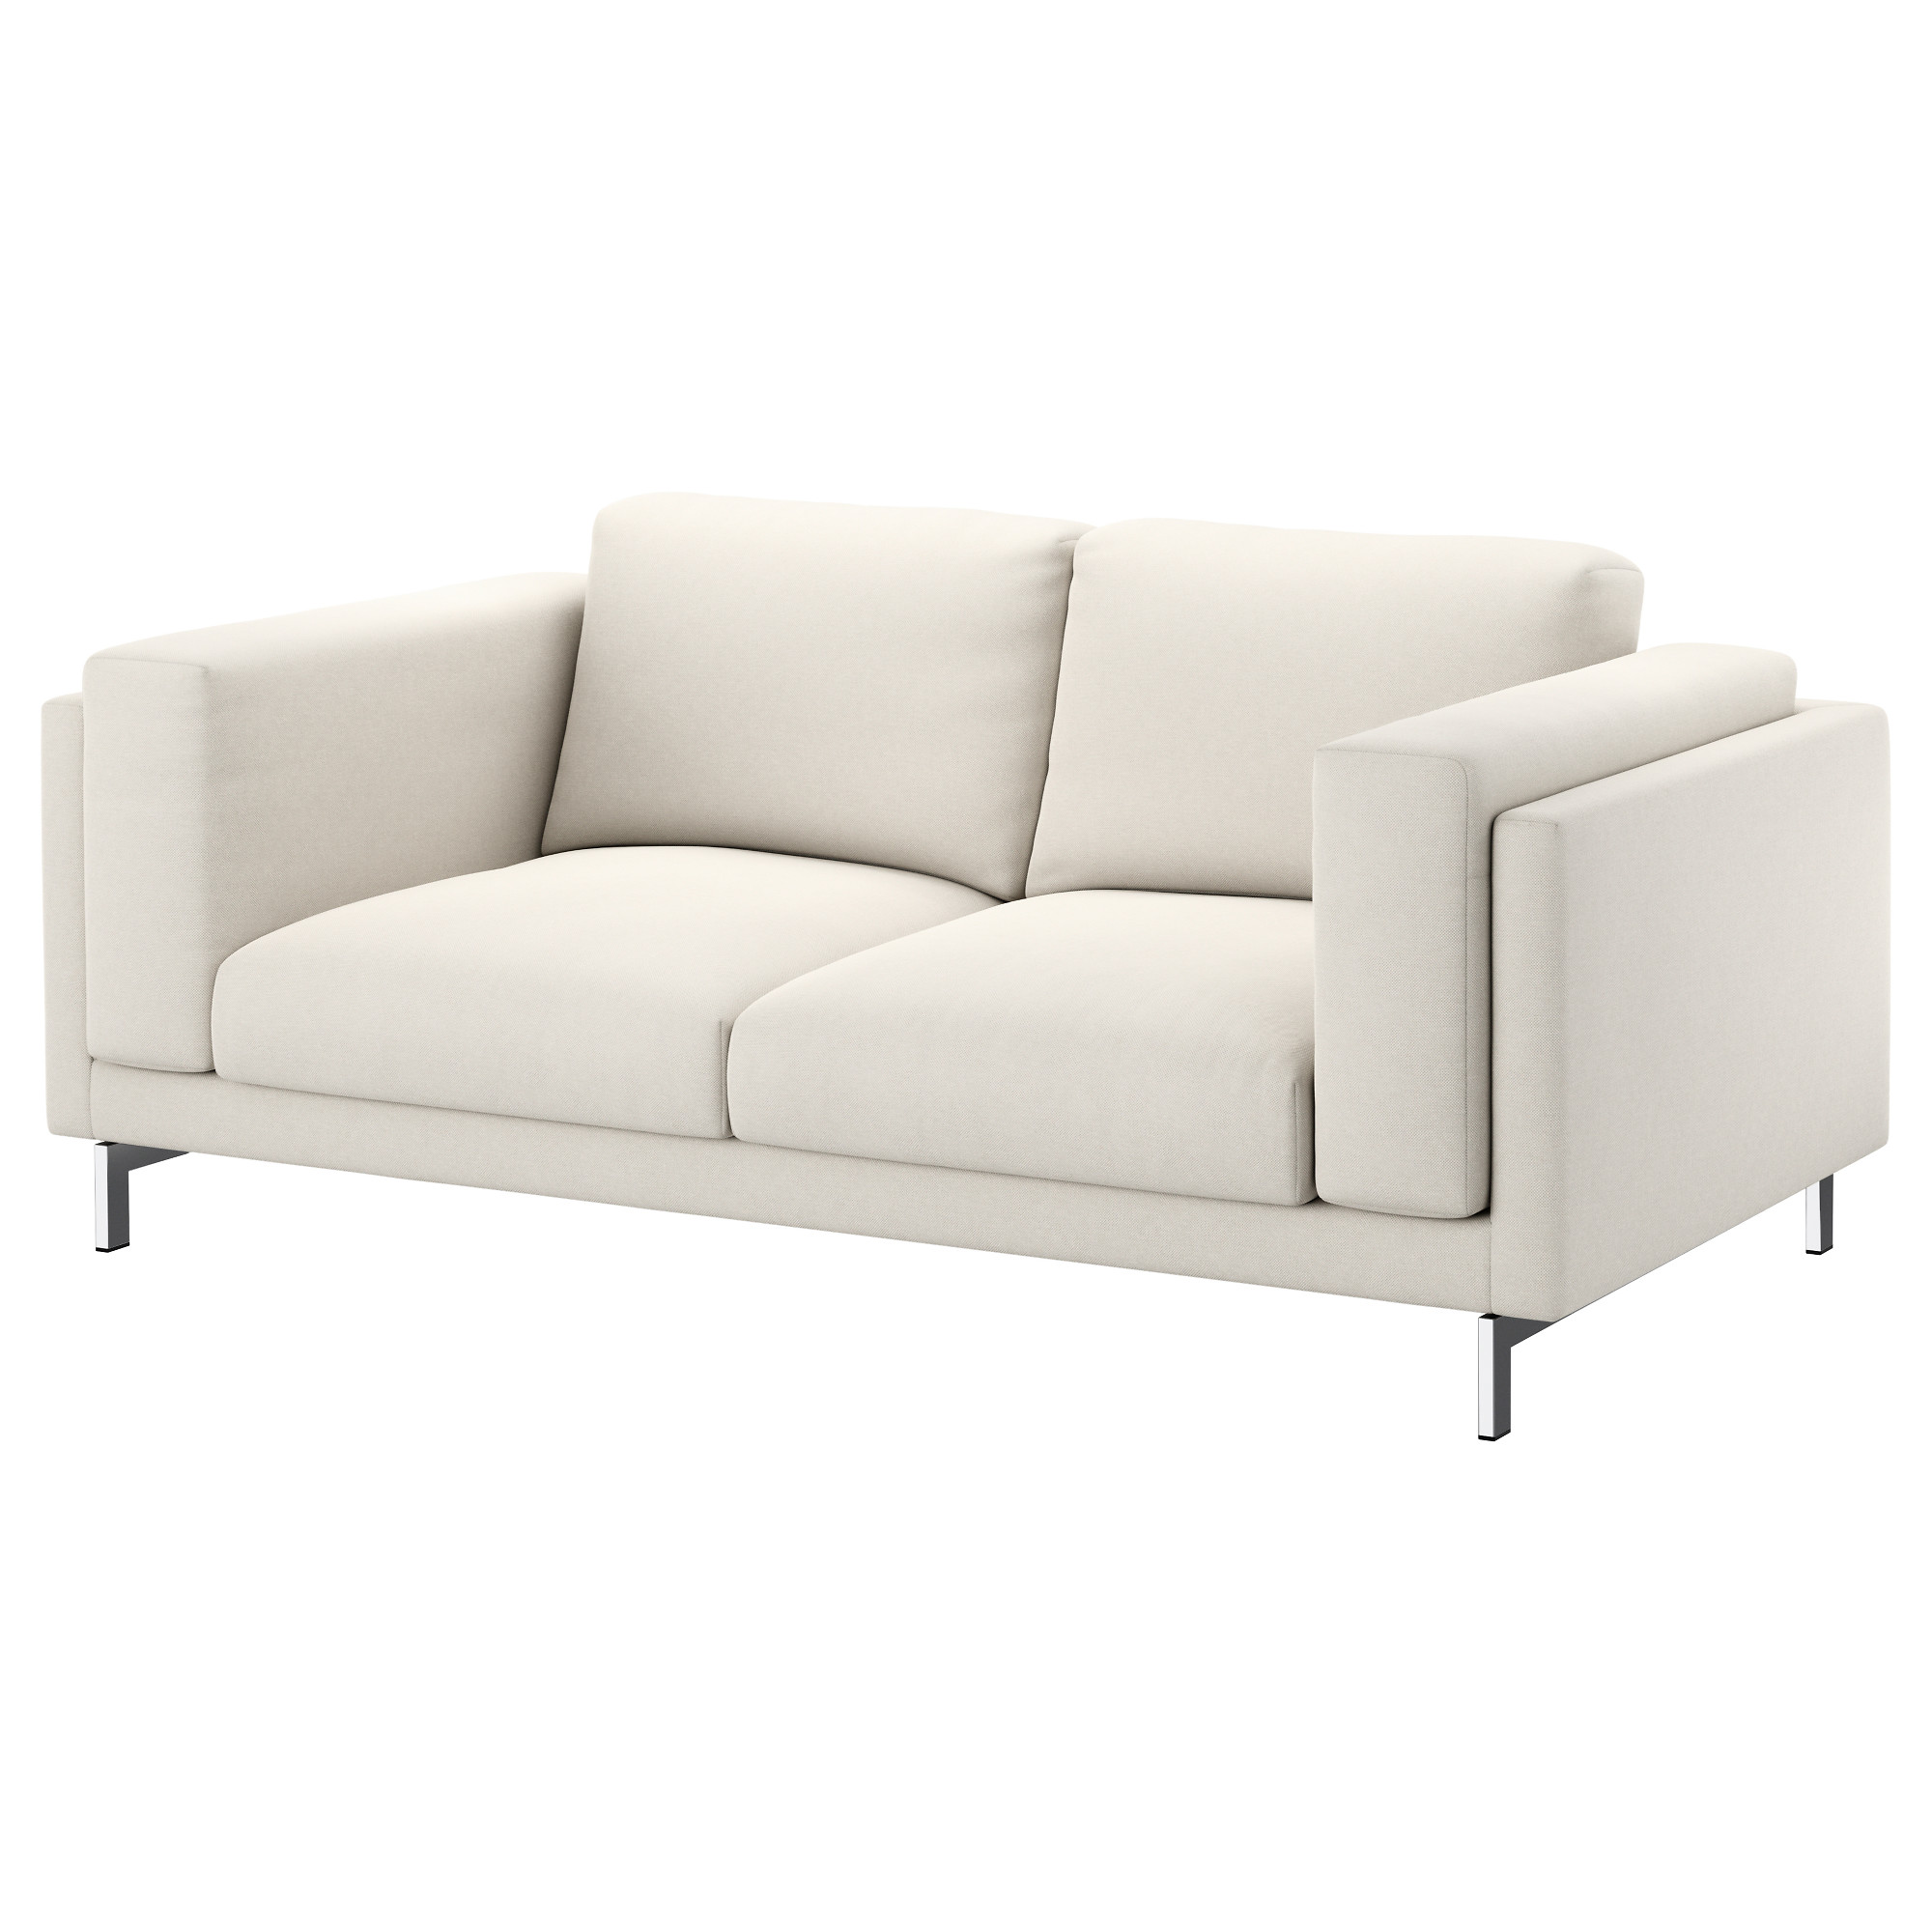 costco the loveseat walmart futon mattress photos chair unique recliner bed tar sofas single sectional of awesome couch sofa